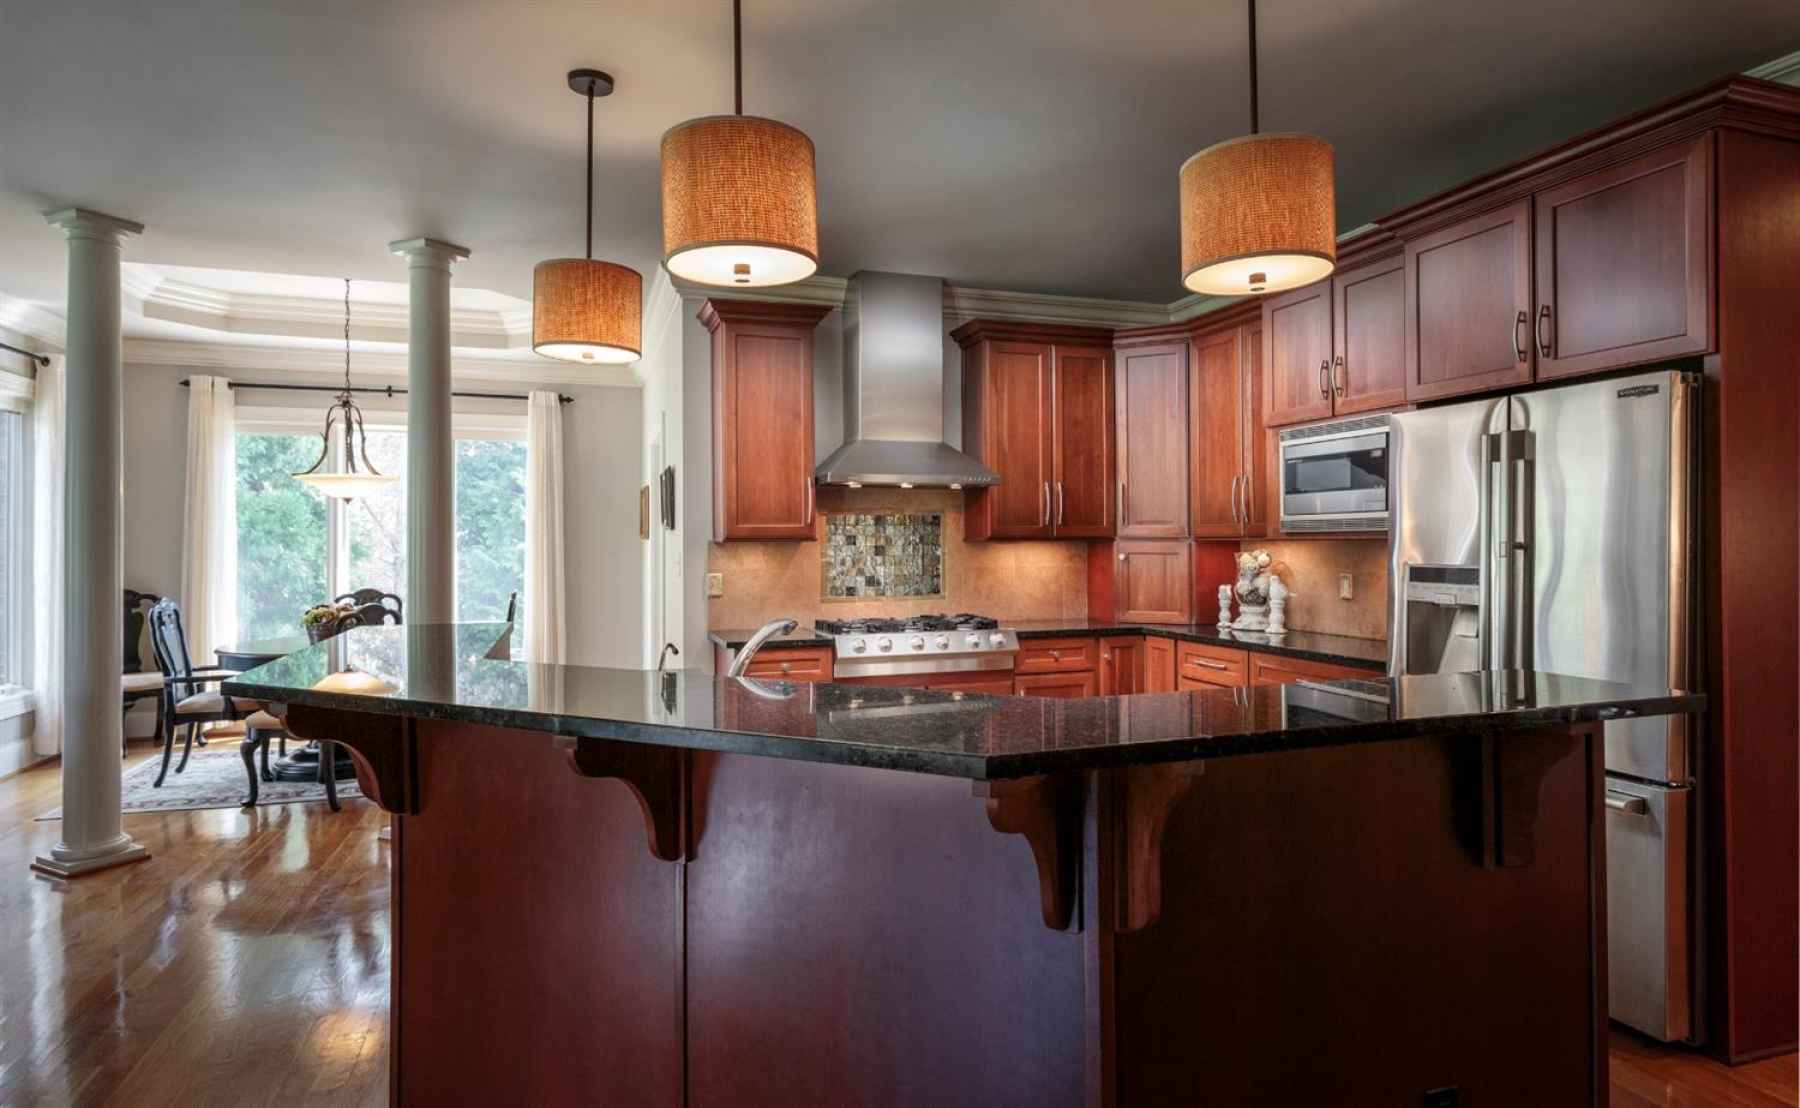 The Kitchen opens to the family room and breakfast area.